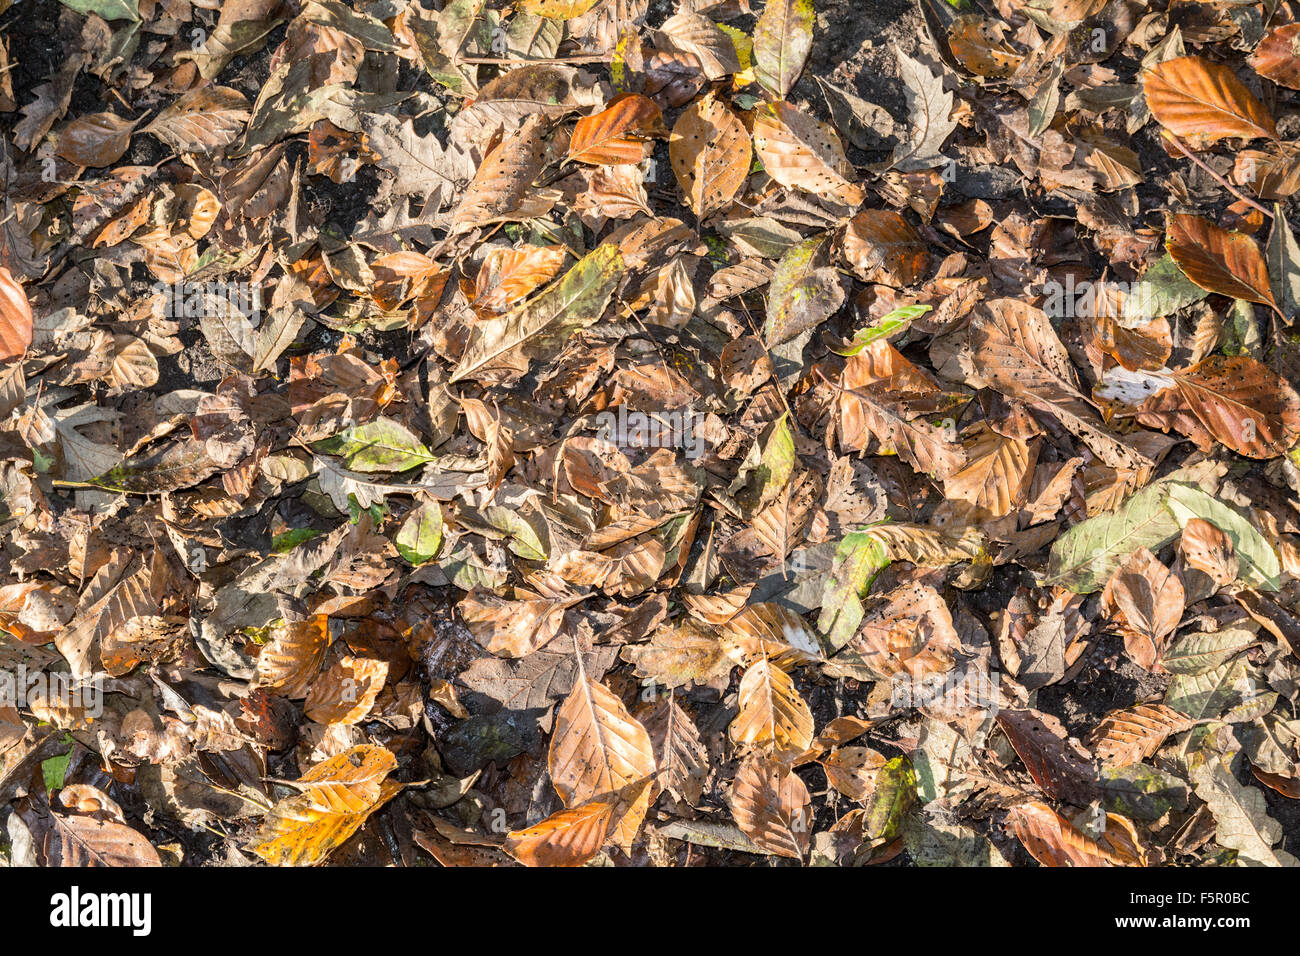 Autumn Leaves on a forest floor - Stock Image